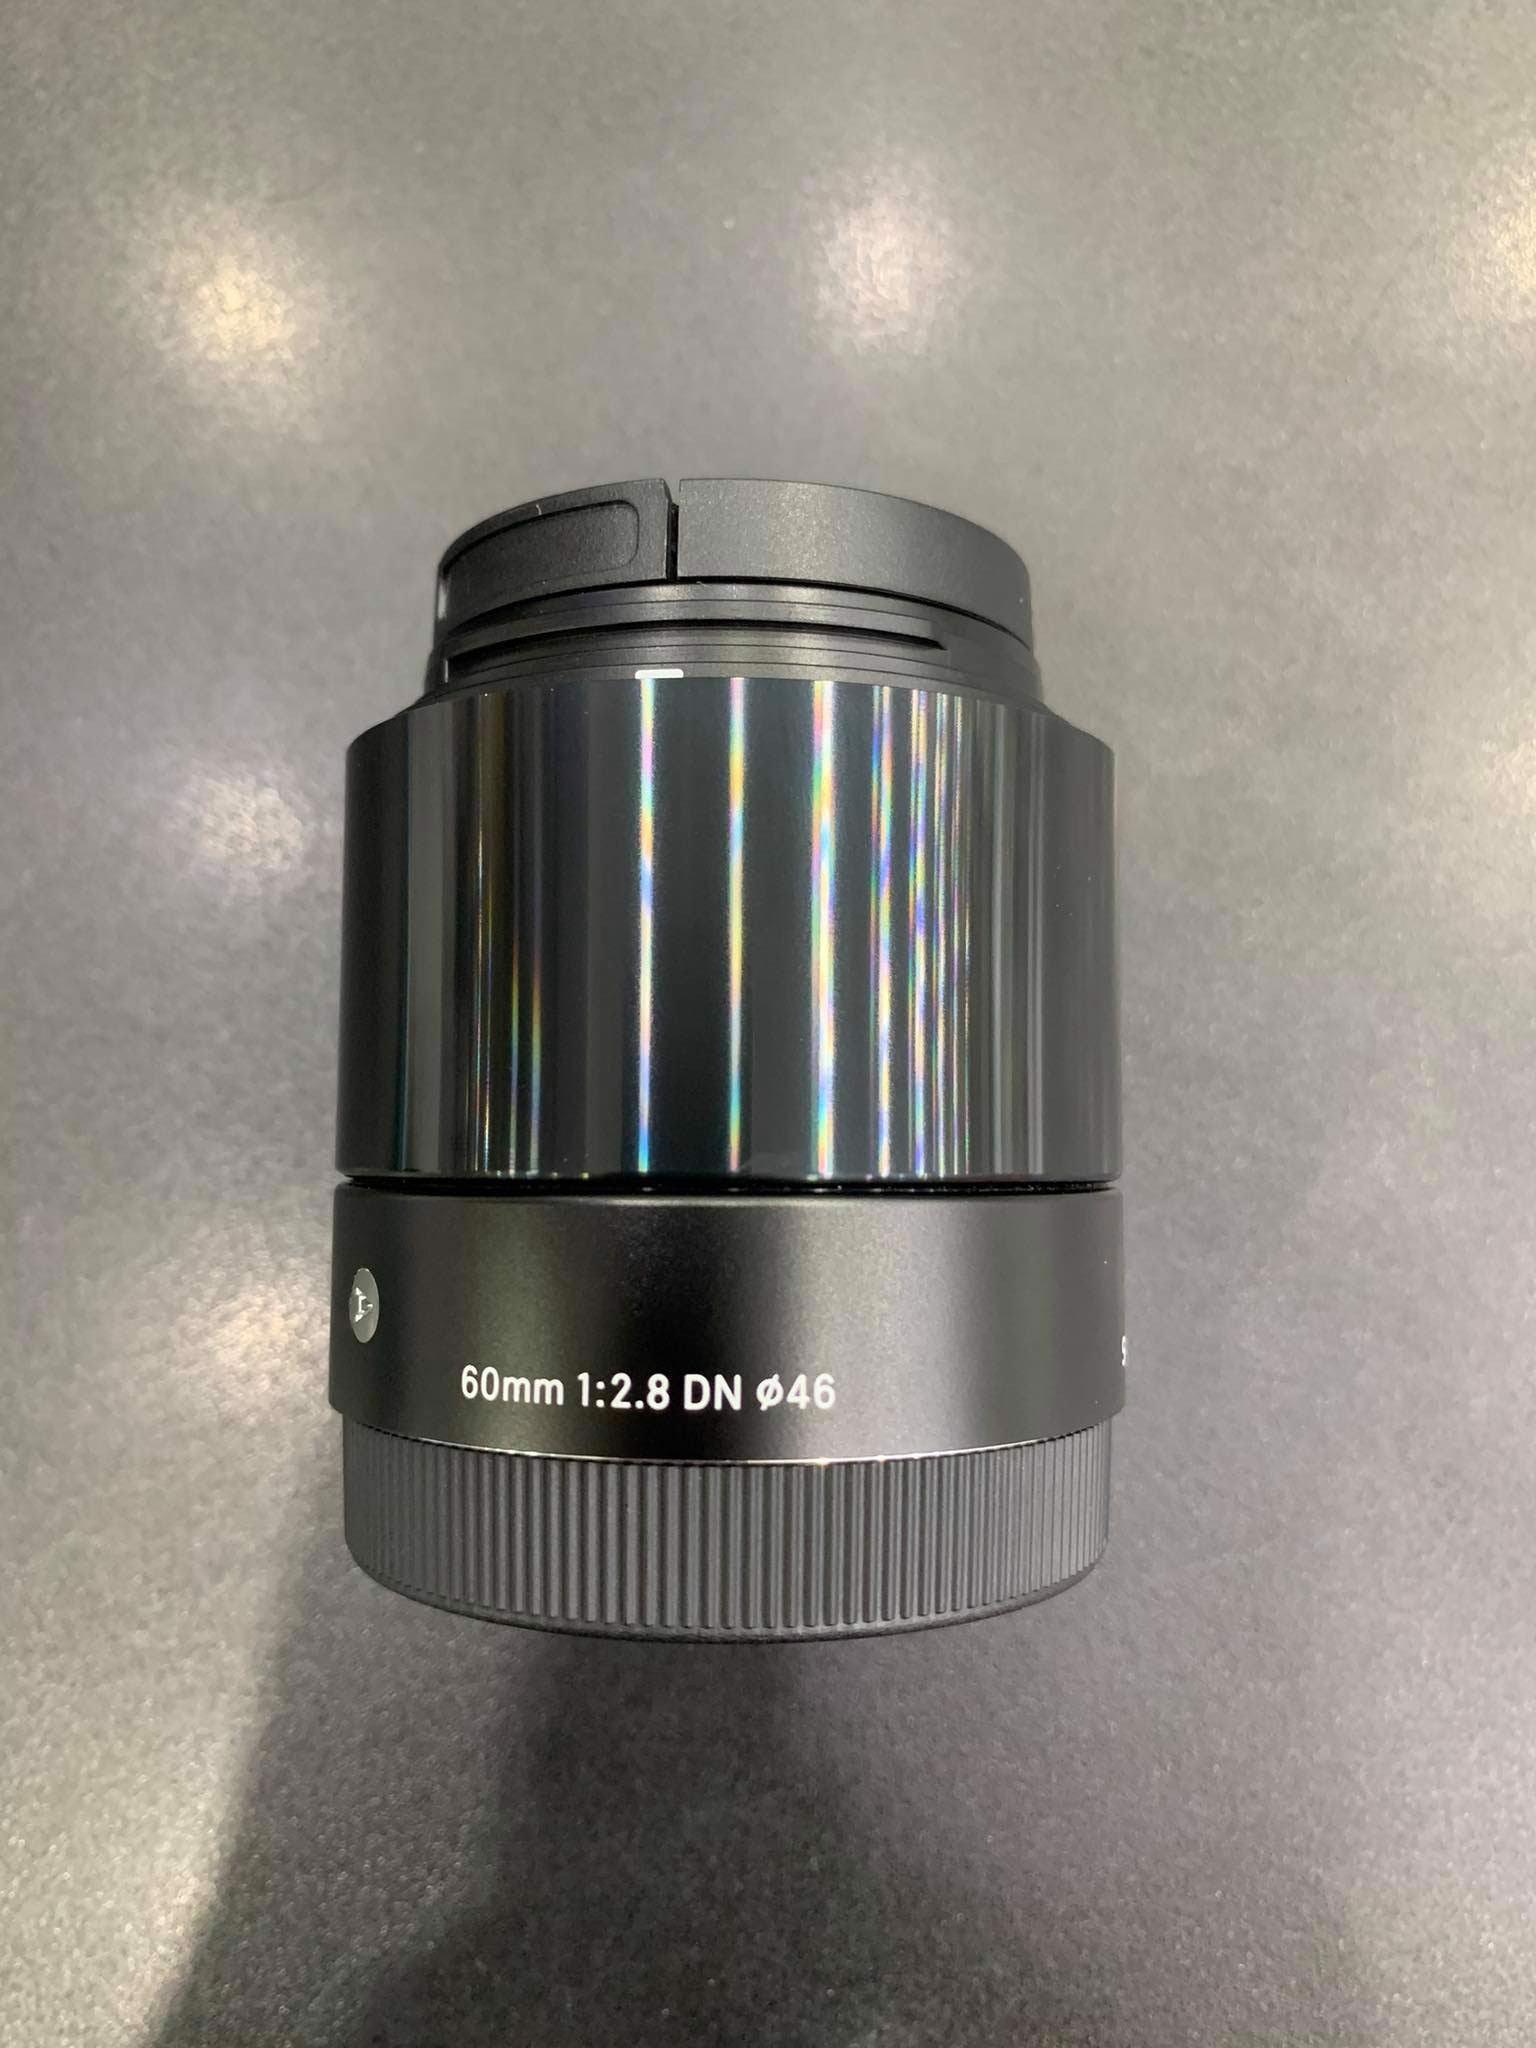 Sigma 60mm F2.8 Dn for Sony E cũ